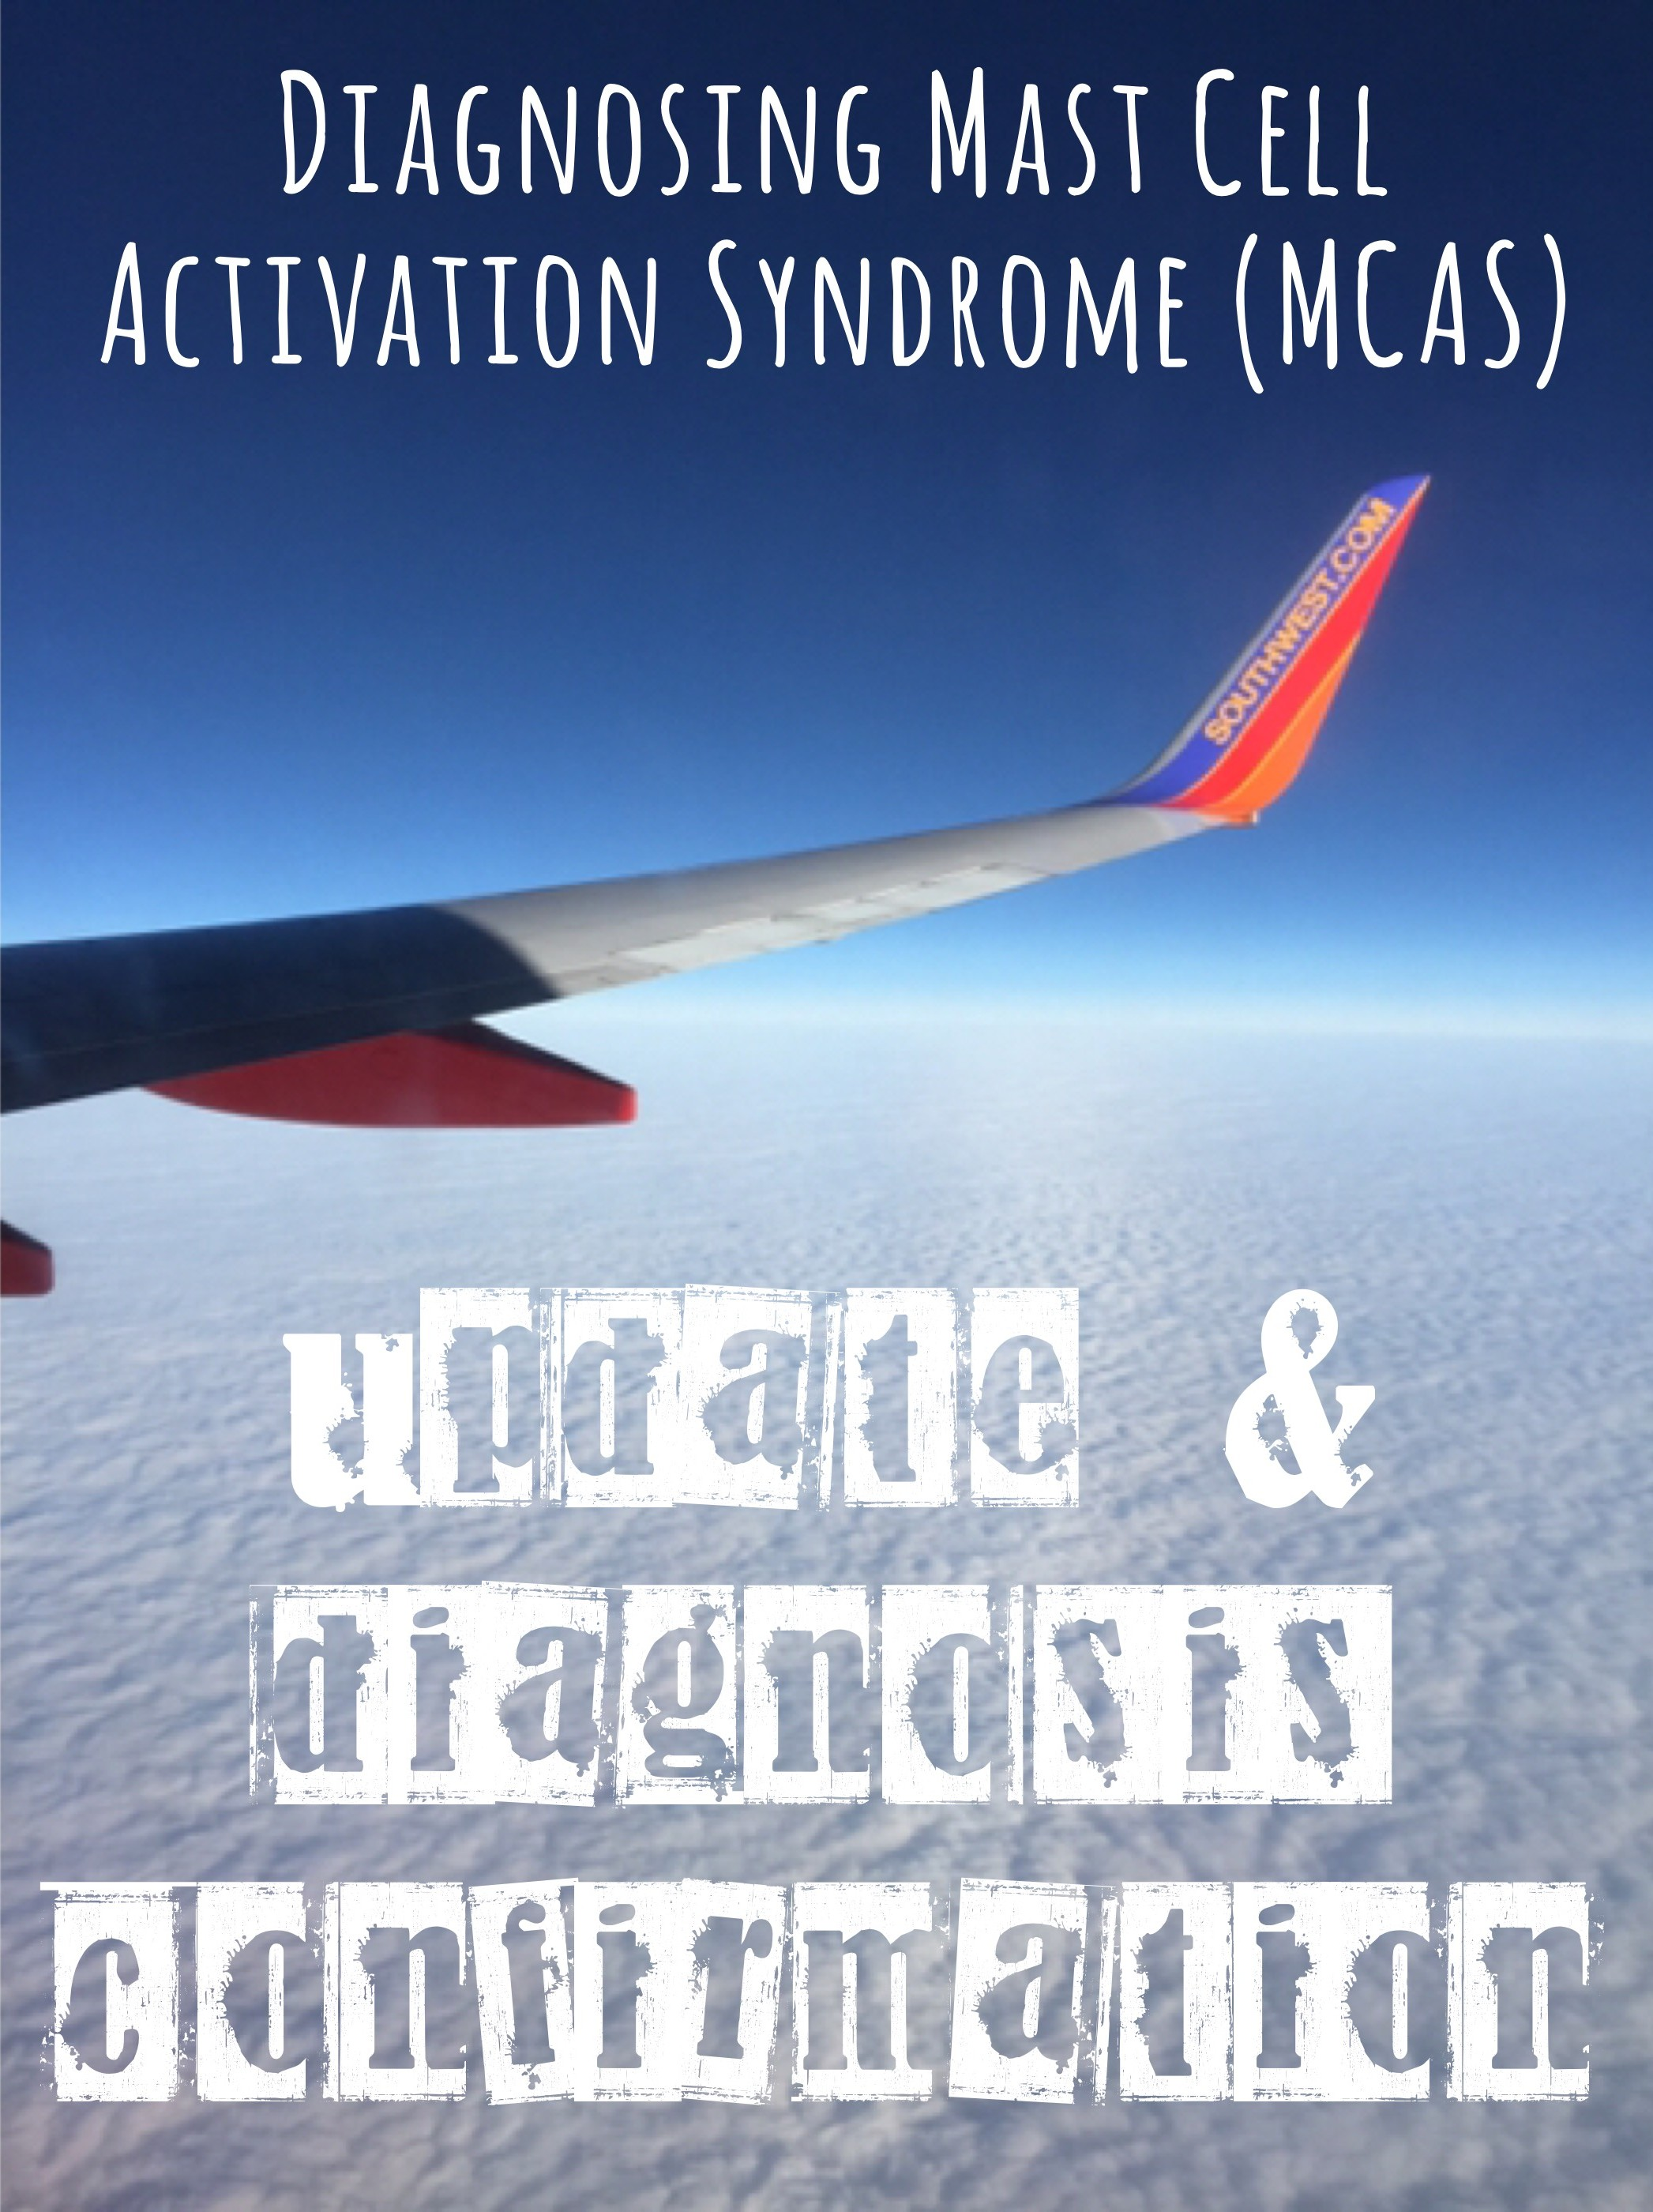 Diagnosing Mast Cell Activation Syndrome (MCAS) – Update and diagnosis confirmation